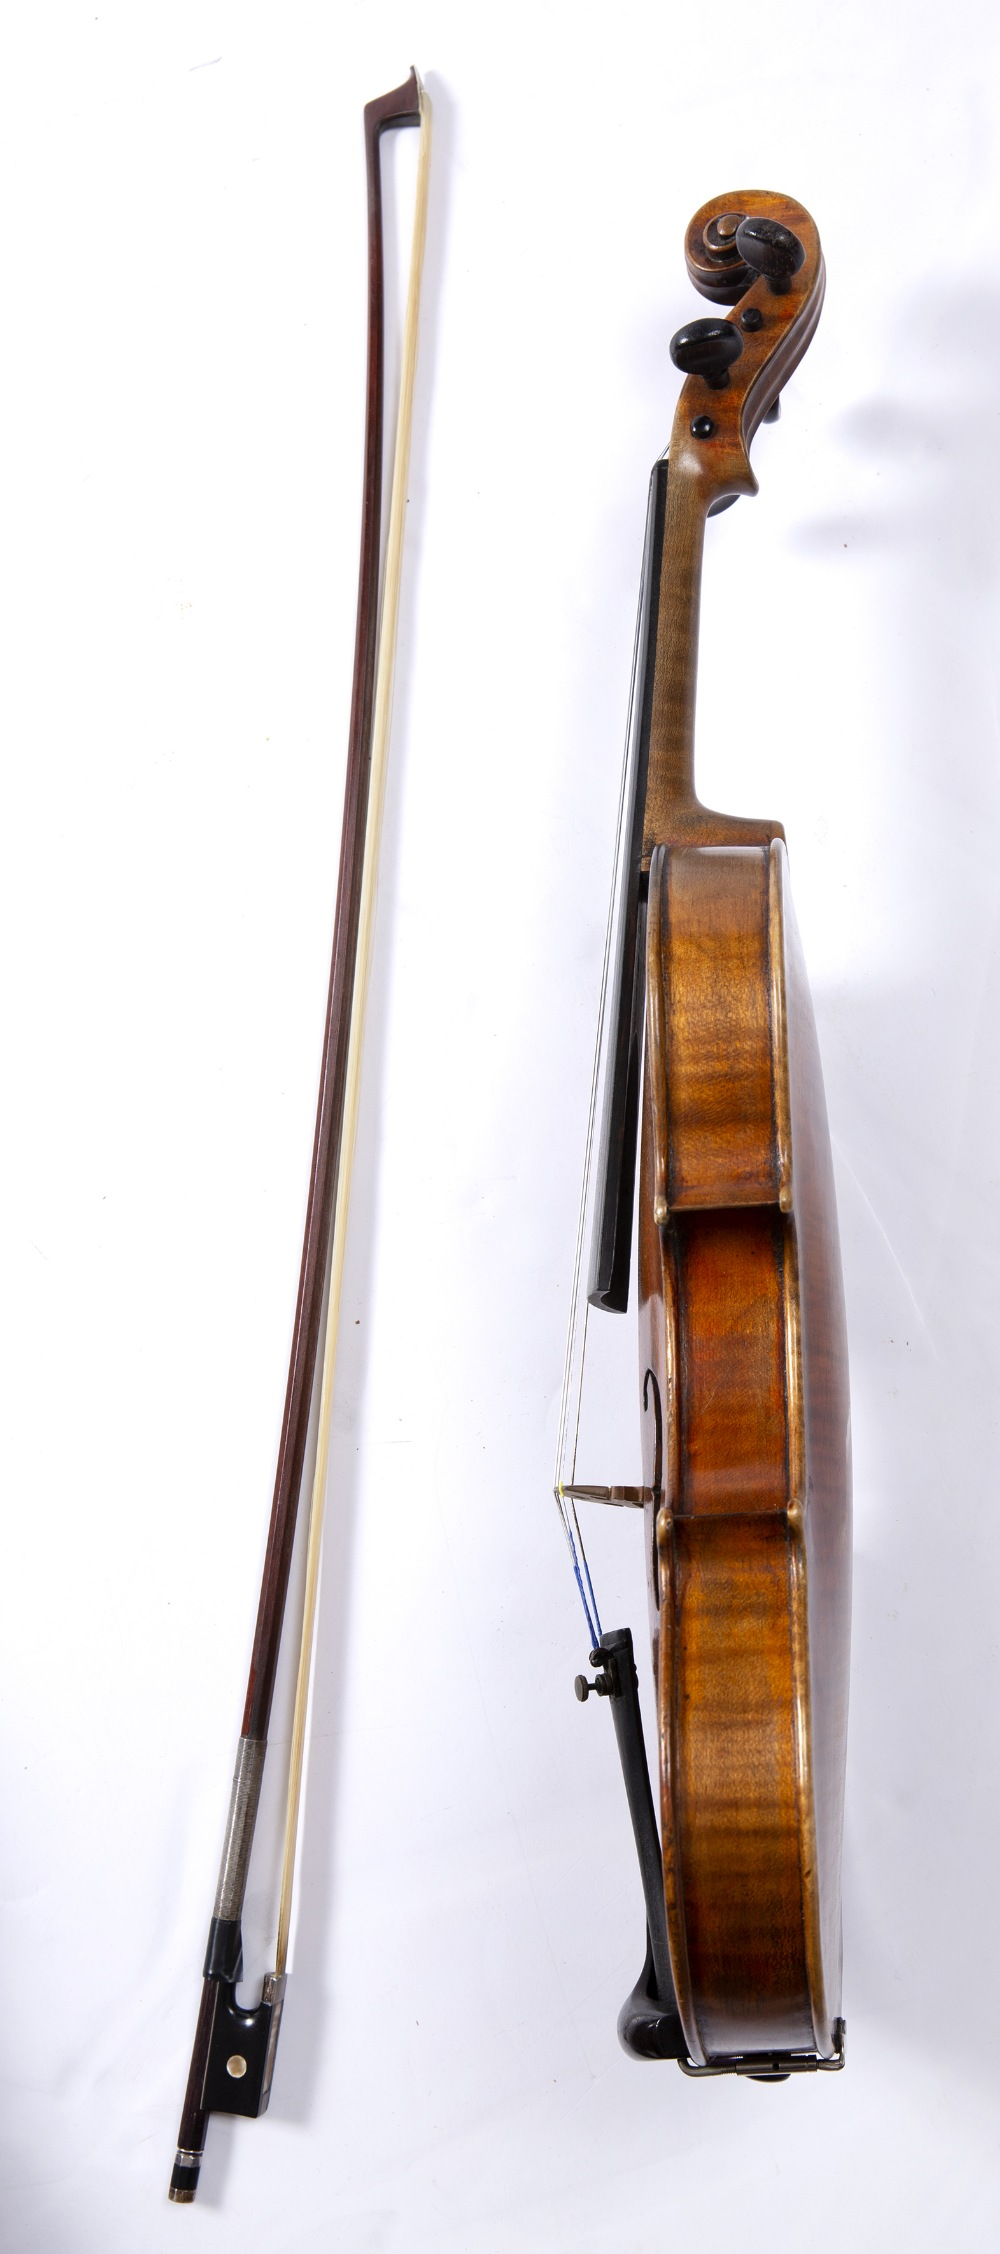 A LATE 19TH CENTURY GERMAN VIOLIN with two piece back, back length 36cm; with German bow, in - Image 3 of 4